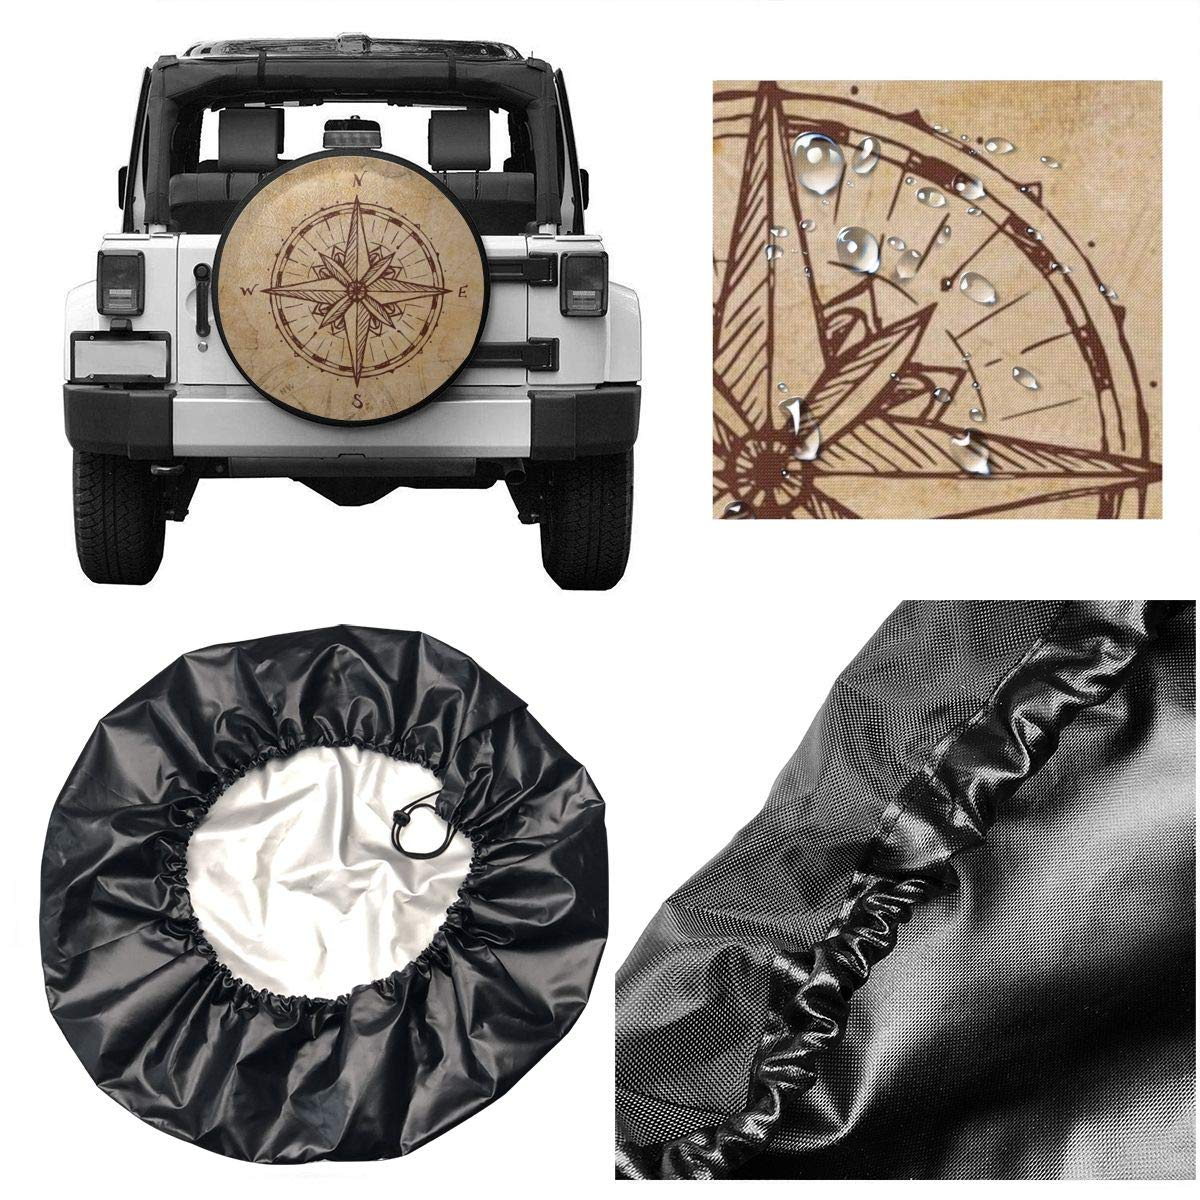 Ouqiuwa Spare Tire Cover Compass Vintage Universal Wheel Covers for Jeep Trailer RV SUV 15 Inch for Diameter 27-29 Inch